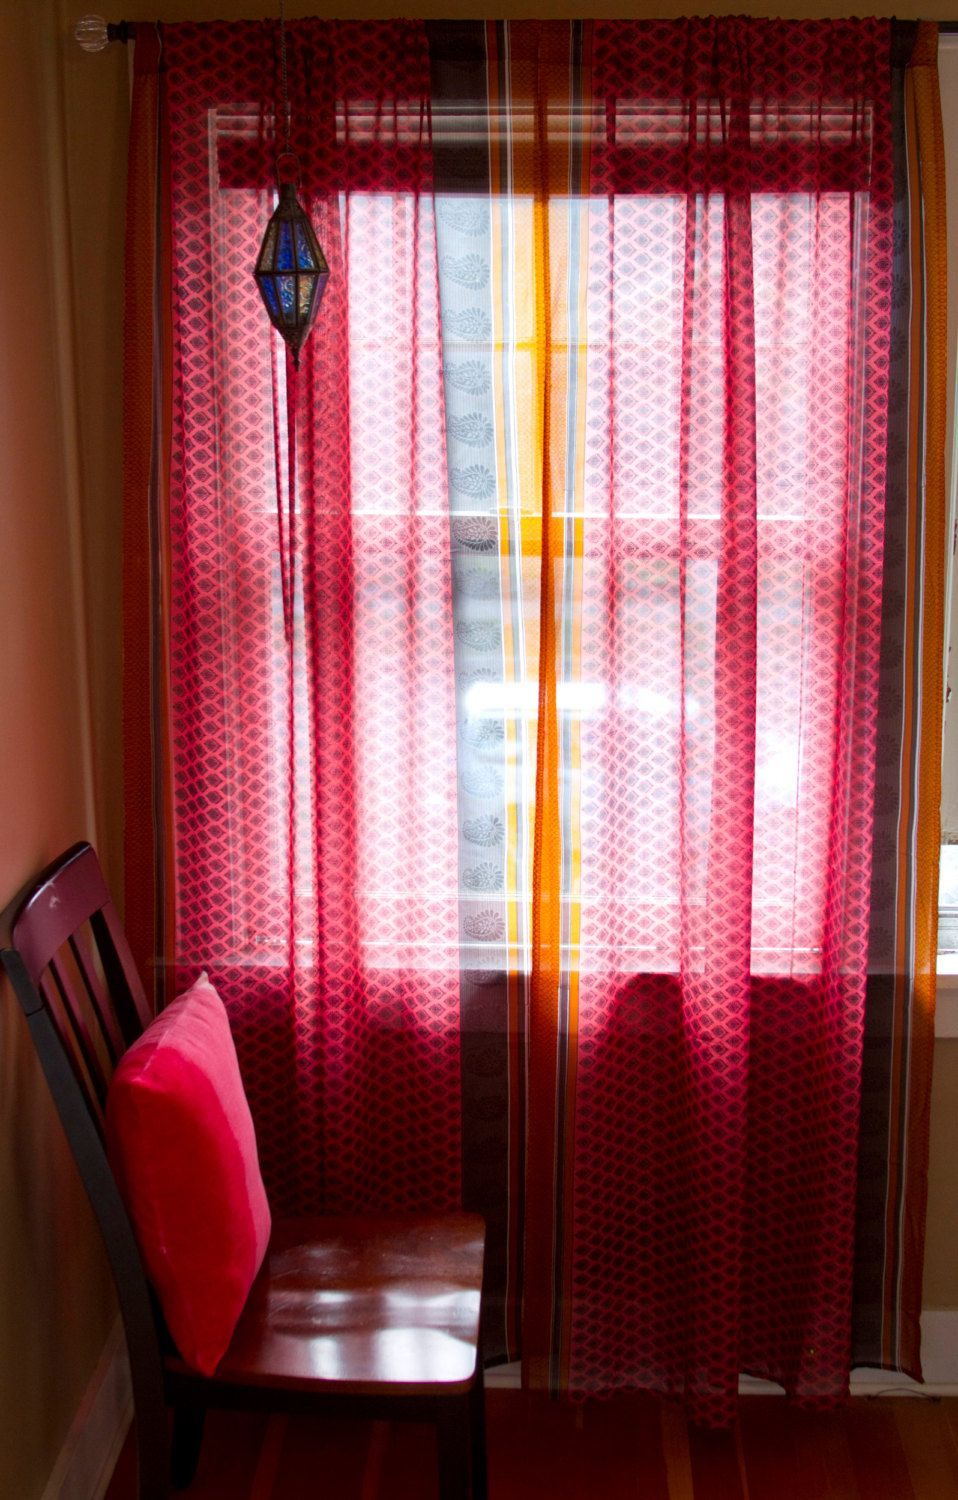 Sari Curtains Two Sheer Curtain Panels Pink And Orange Sari